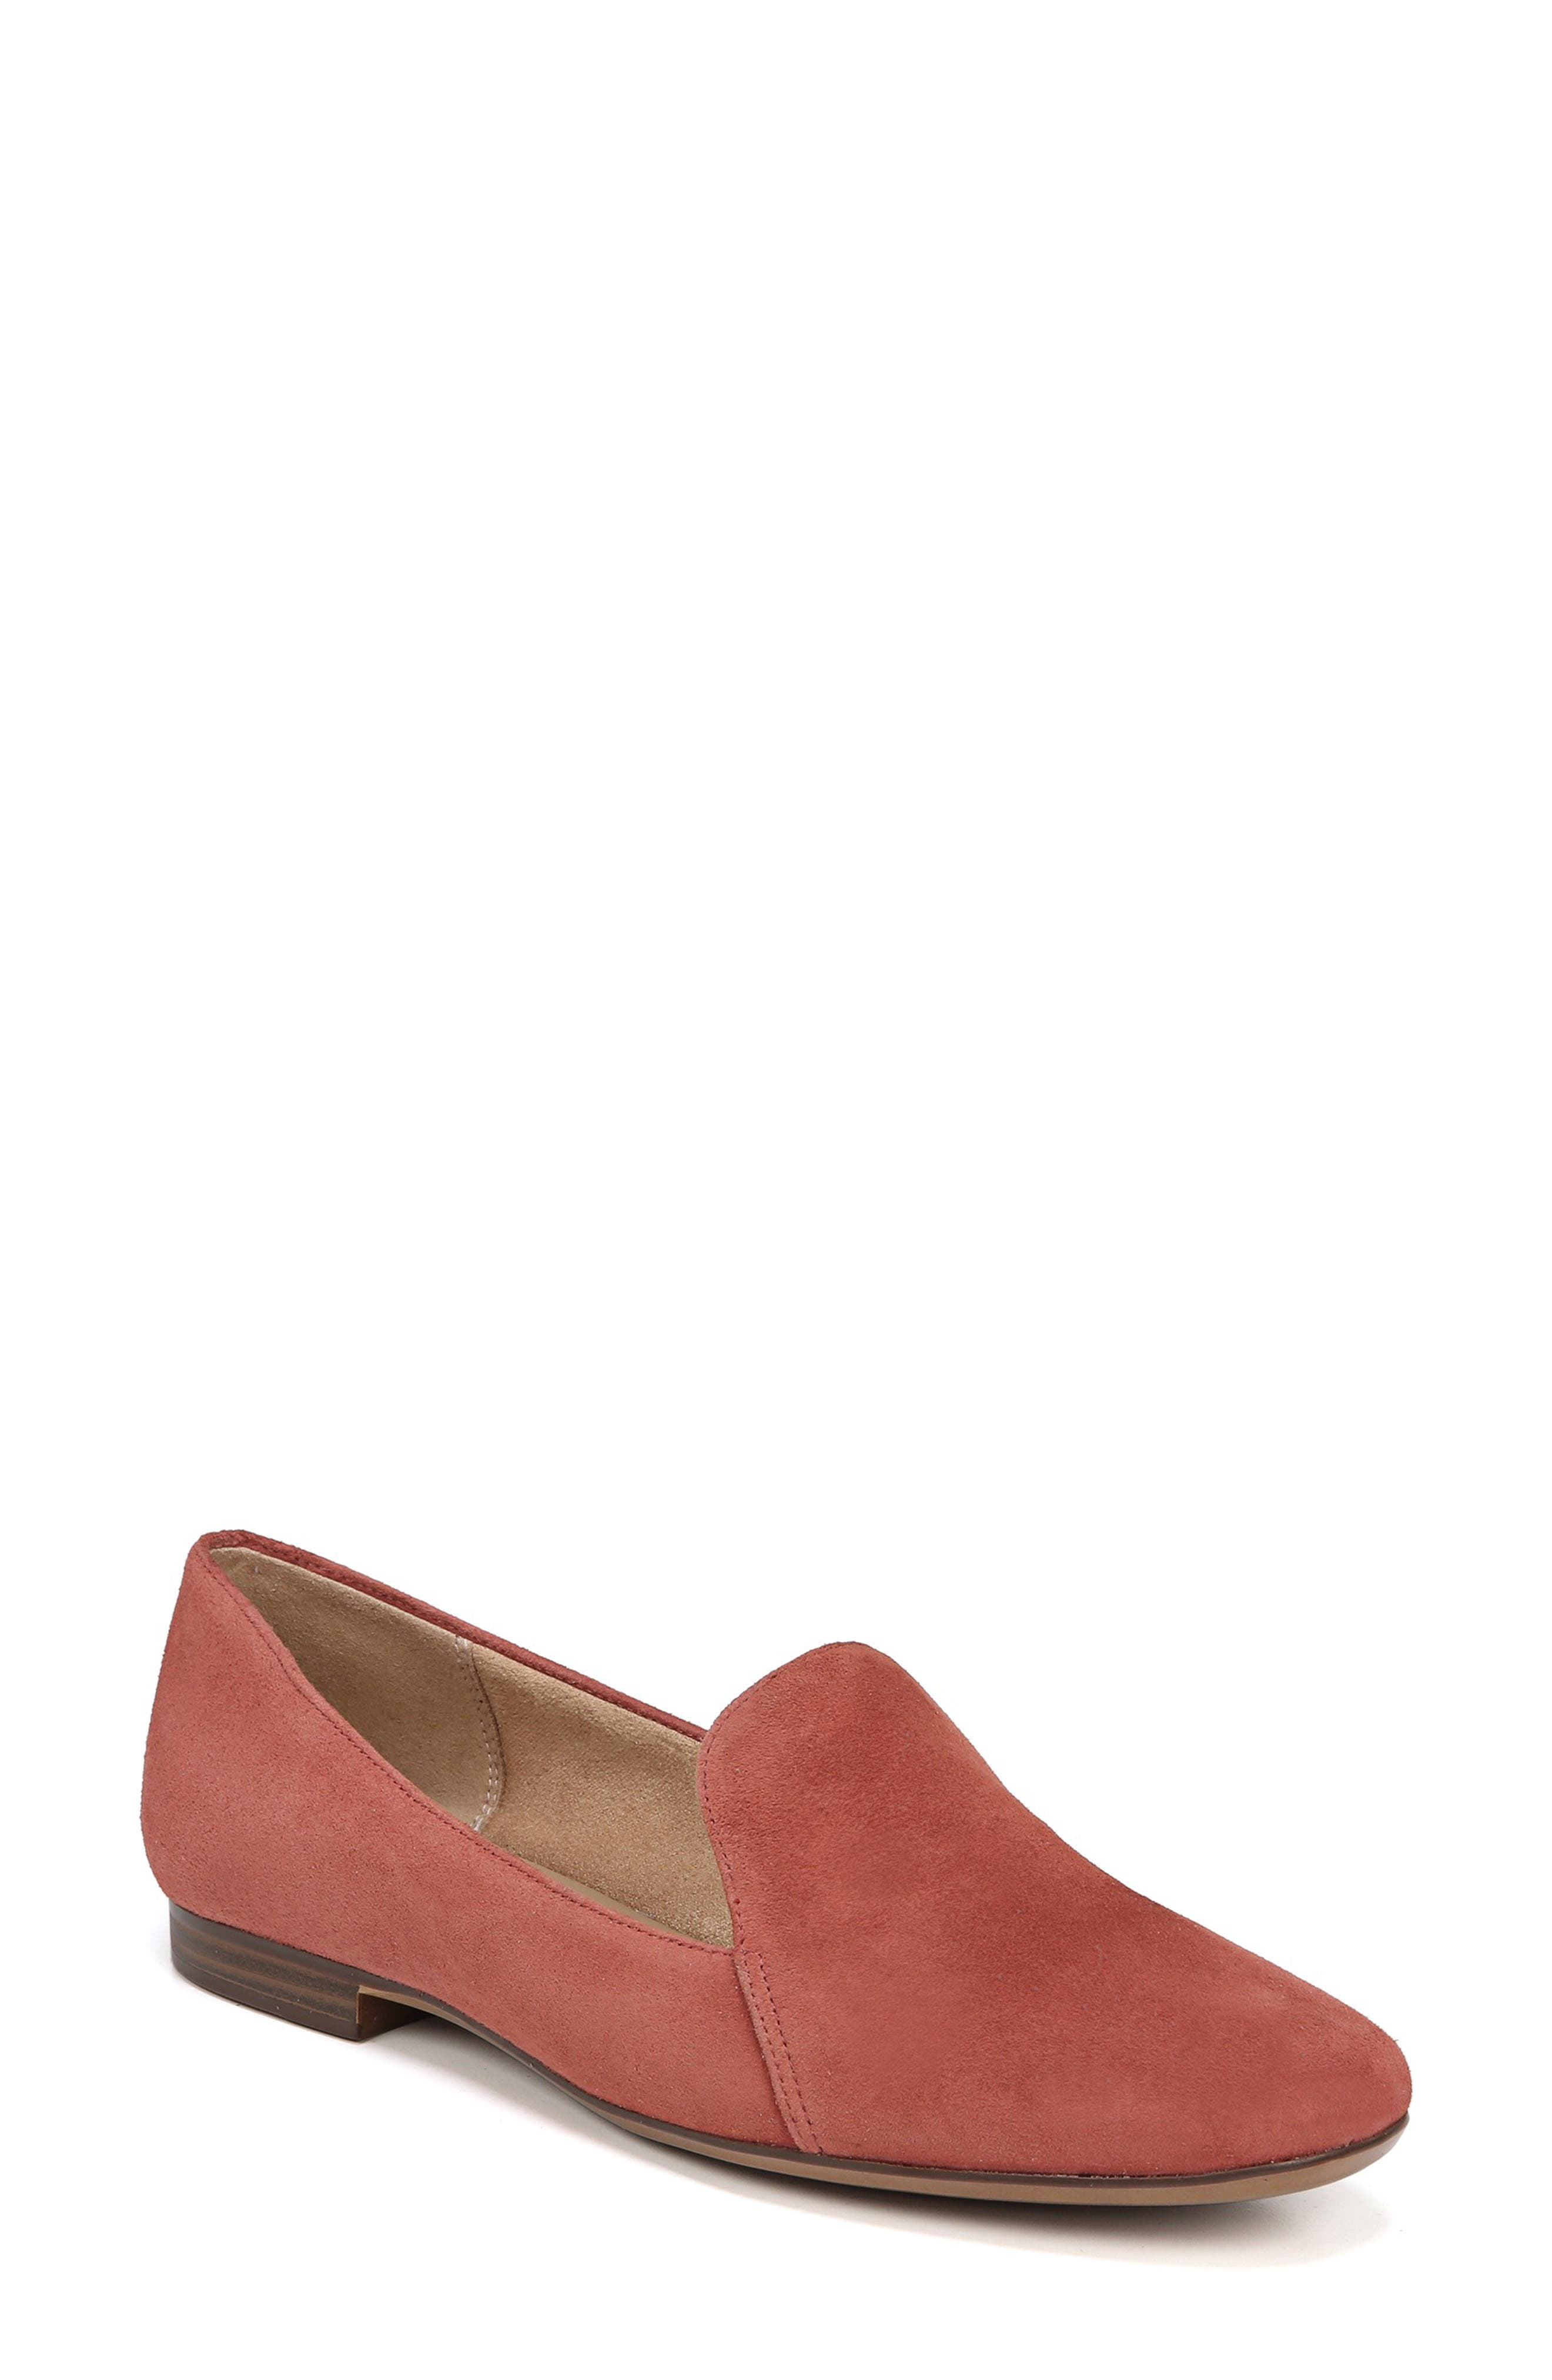 Emiline Flat Loafer,                             Main thumbnail 1, color,                             DESERT CLAY SUEDE